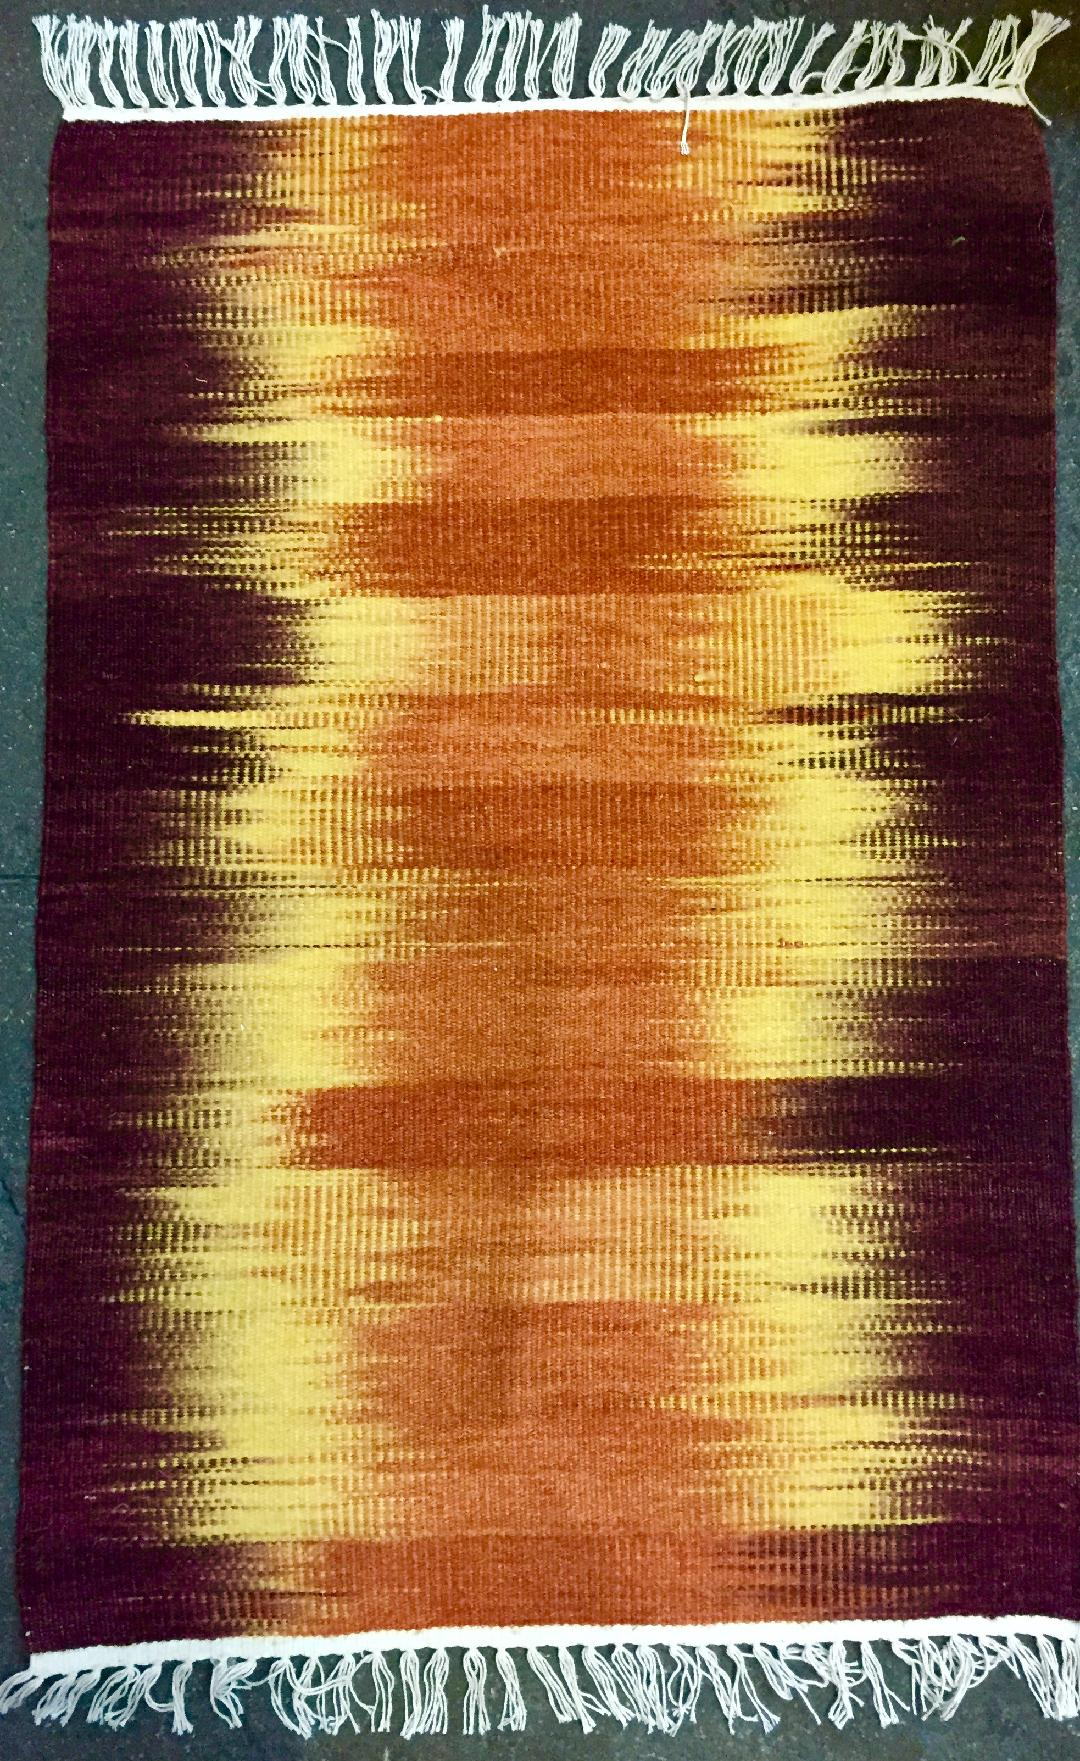 Rust Orange Ikat handwoven rug 1634  Save 50% at checkout with code SAVE50